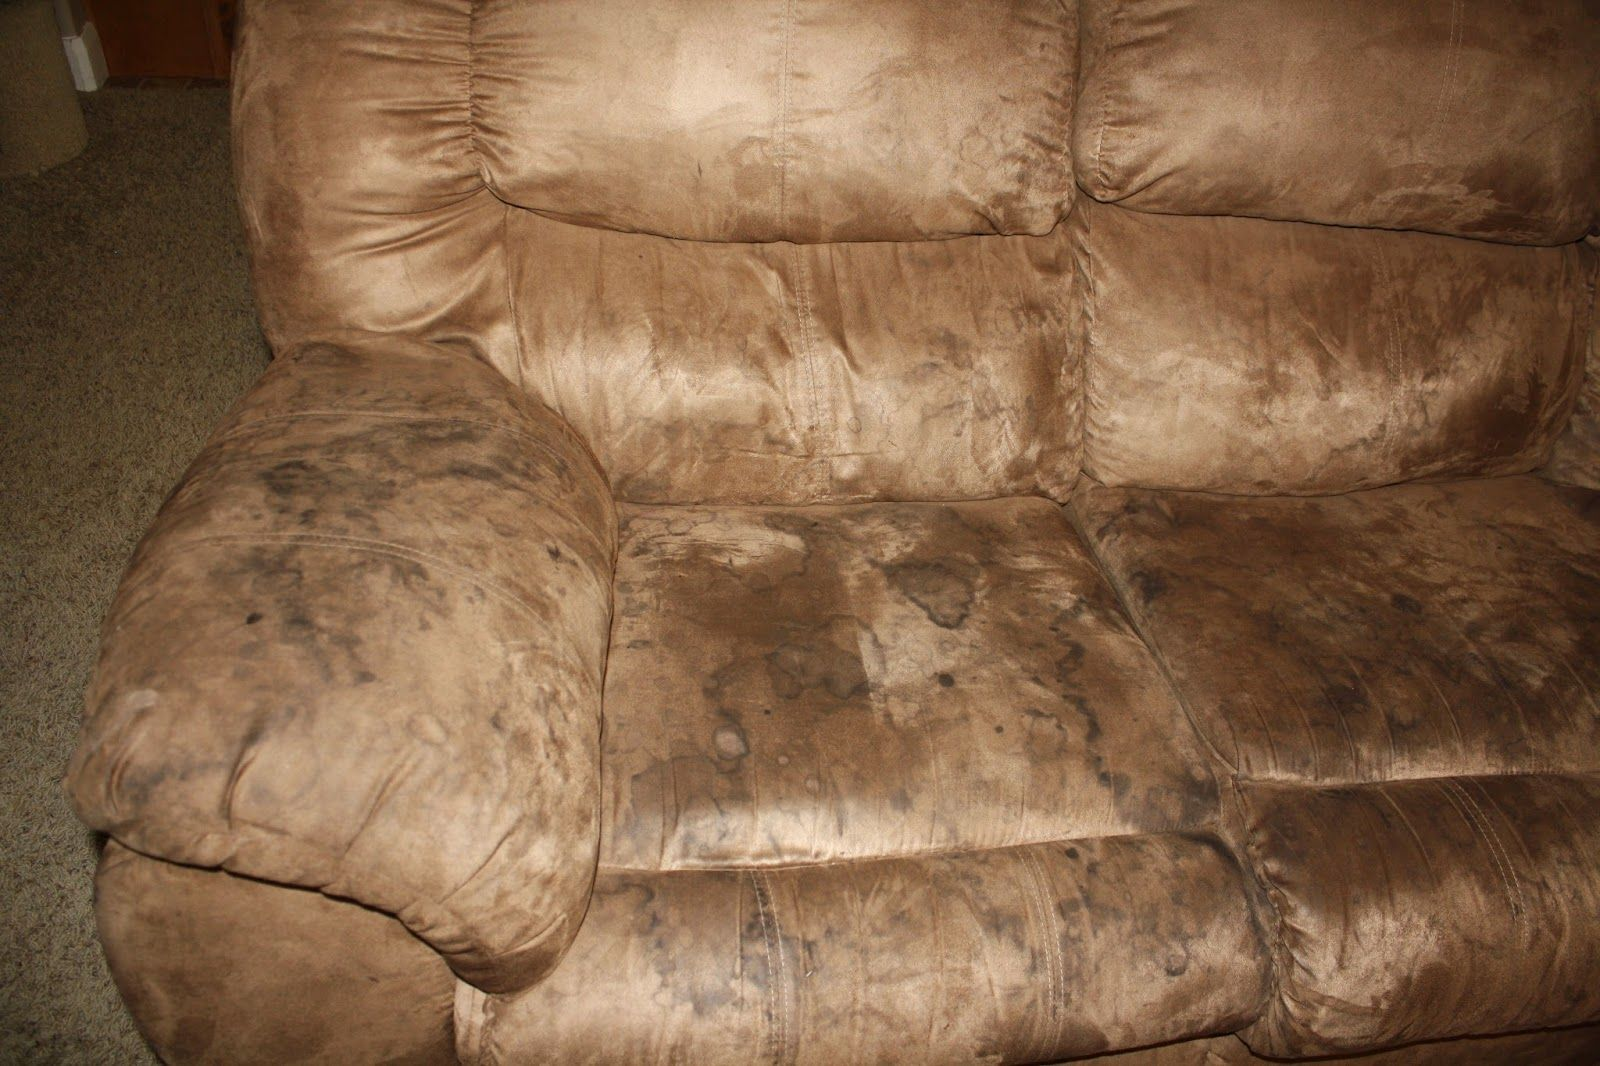 Wondrous How To Clean Microfiber Couches And Get The Water Spots Out Pdpeps Interior Chair Design Pdpepsorg